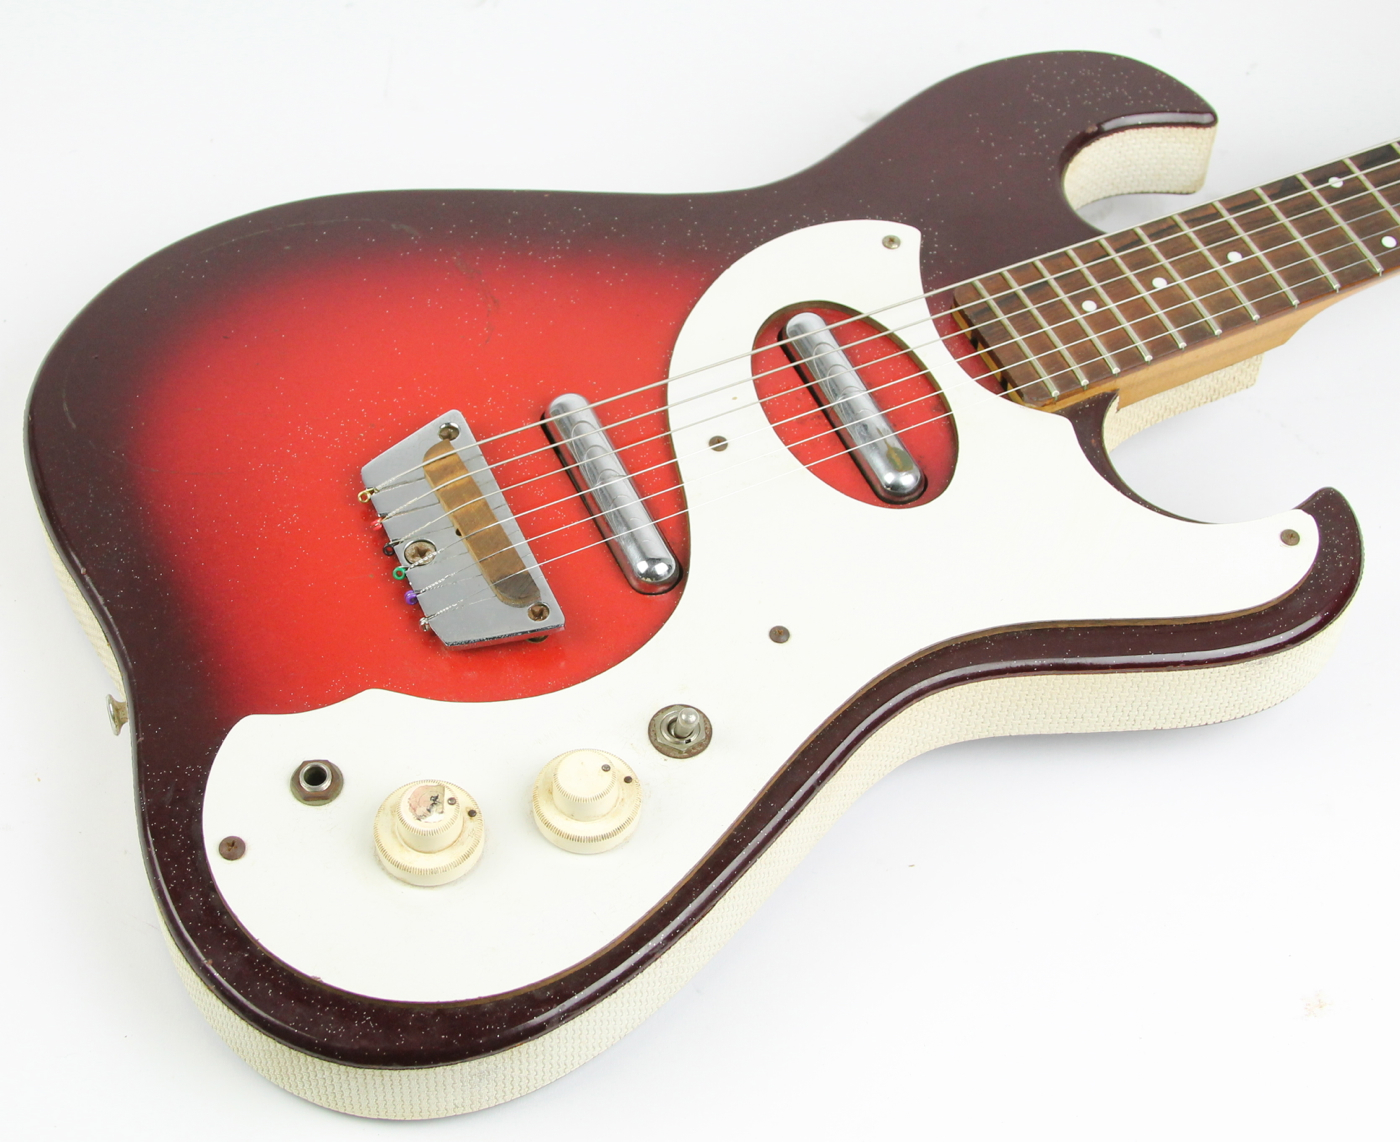 p2_u5lfhxej2_so 1966 silvertone 1457 amp in case red burst \u003e guitars electric solid